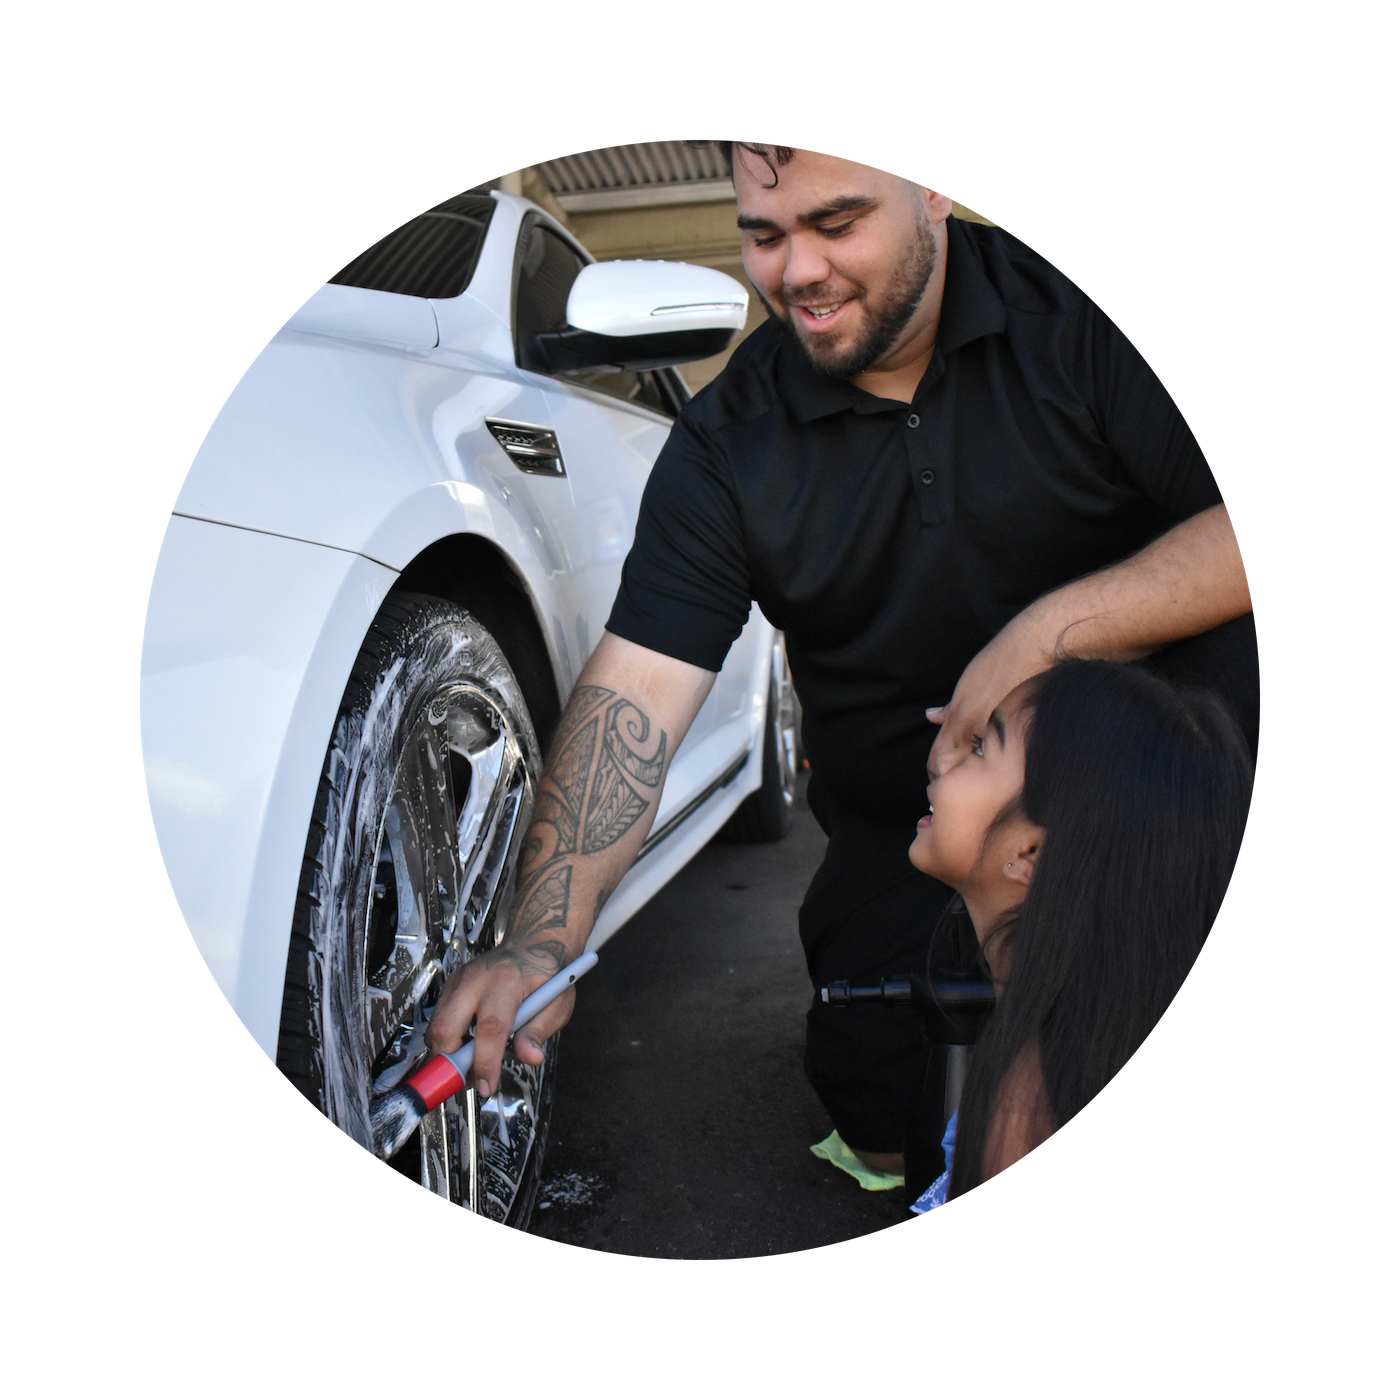 """Ian Garcia, Car Detailer - """"With Brandi's guidance, I've learned how to improve my finances, clear negative energies/blockages, find proper nutrition that works, how to serve others that aligns with my values in life, and many tools to help me evolve into my highest self! My experience with Brandi has been a great awakening and reassessment to what actions I take in my life. Brandi has helped me to expand on the best parts of me, and I want to spread that contagious encouragement with others!"""""""